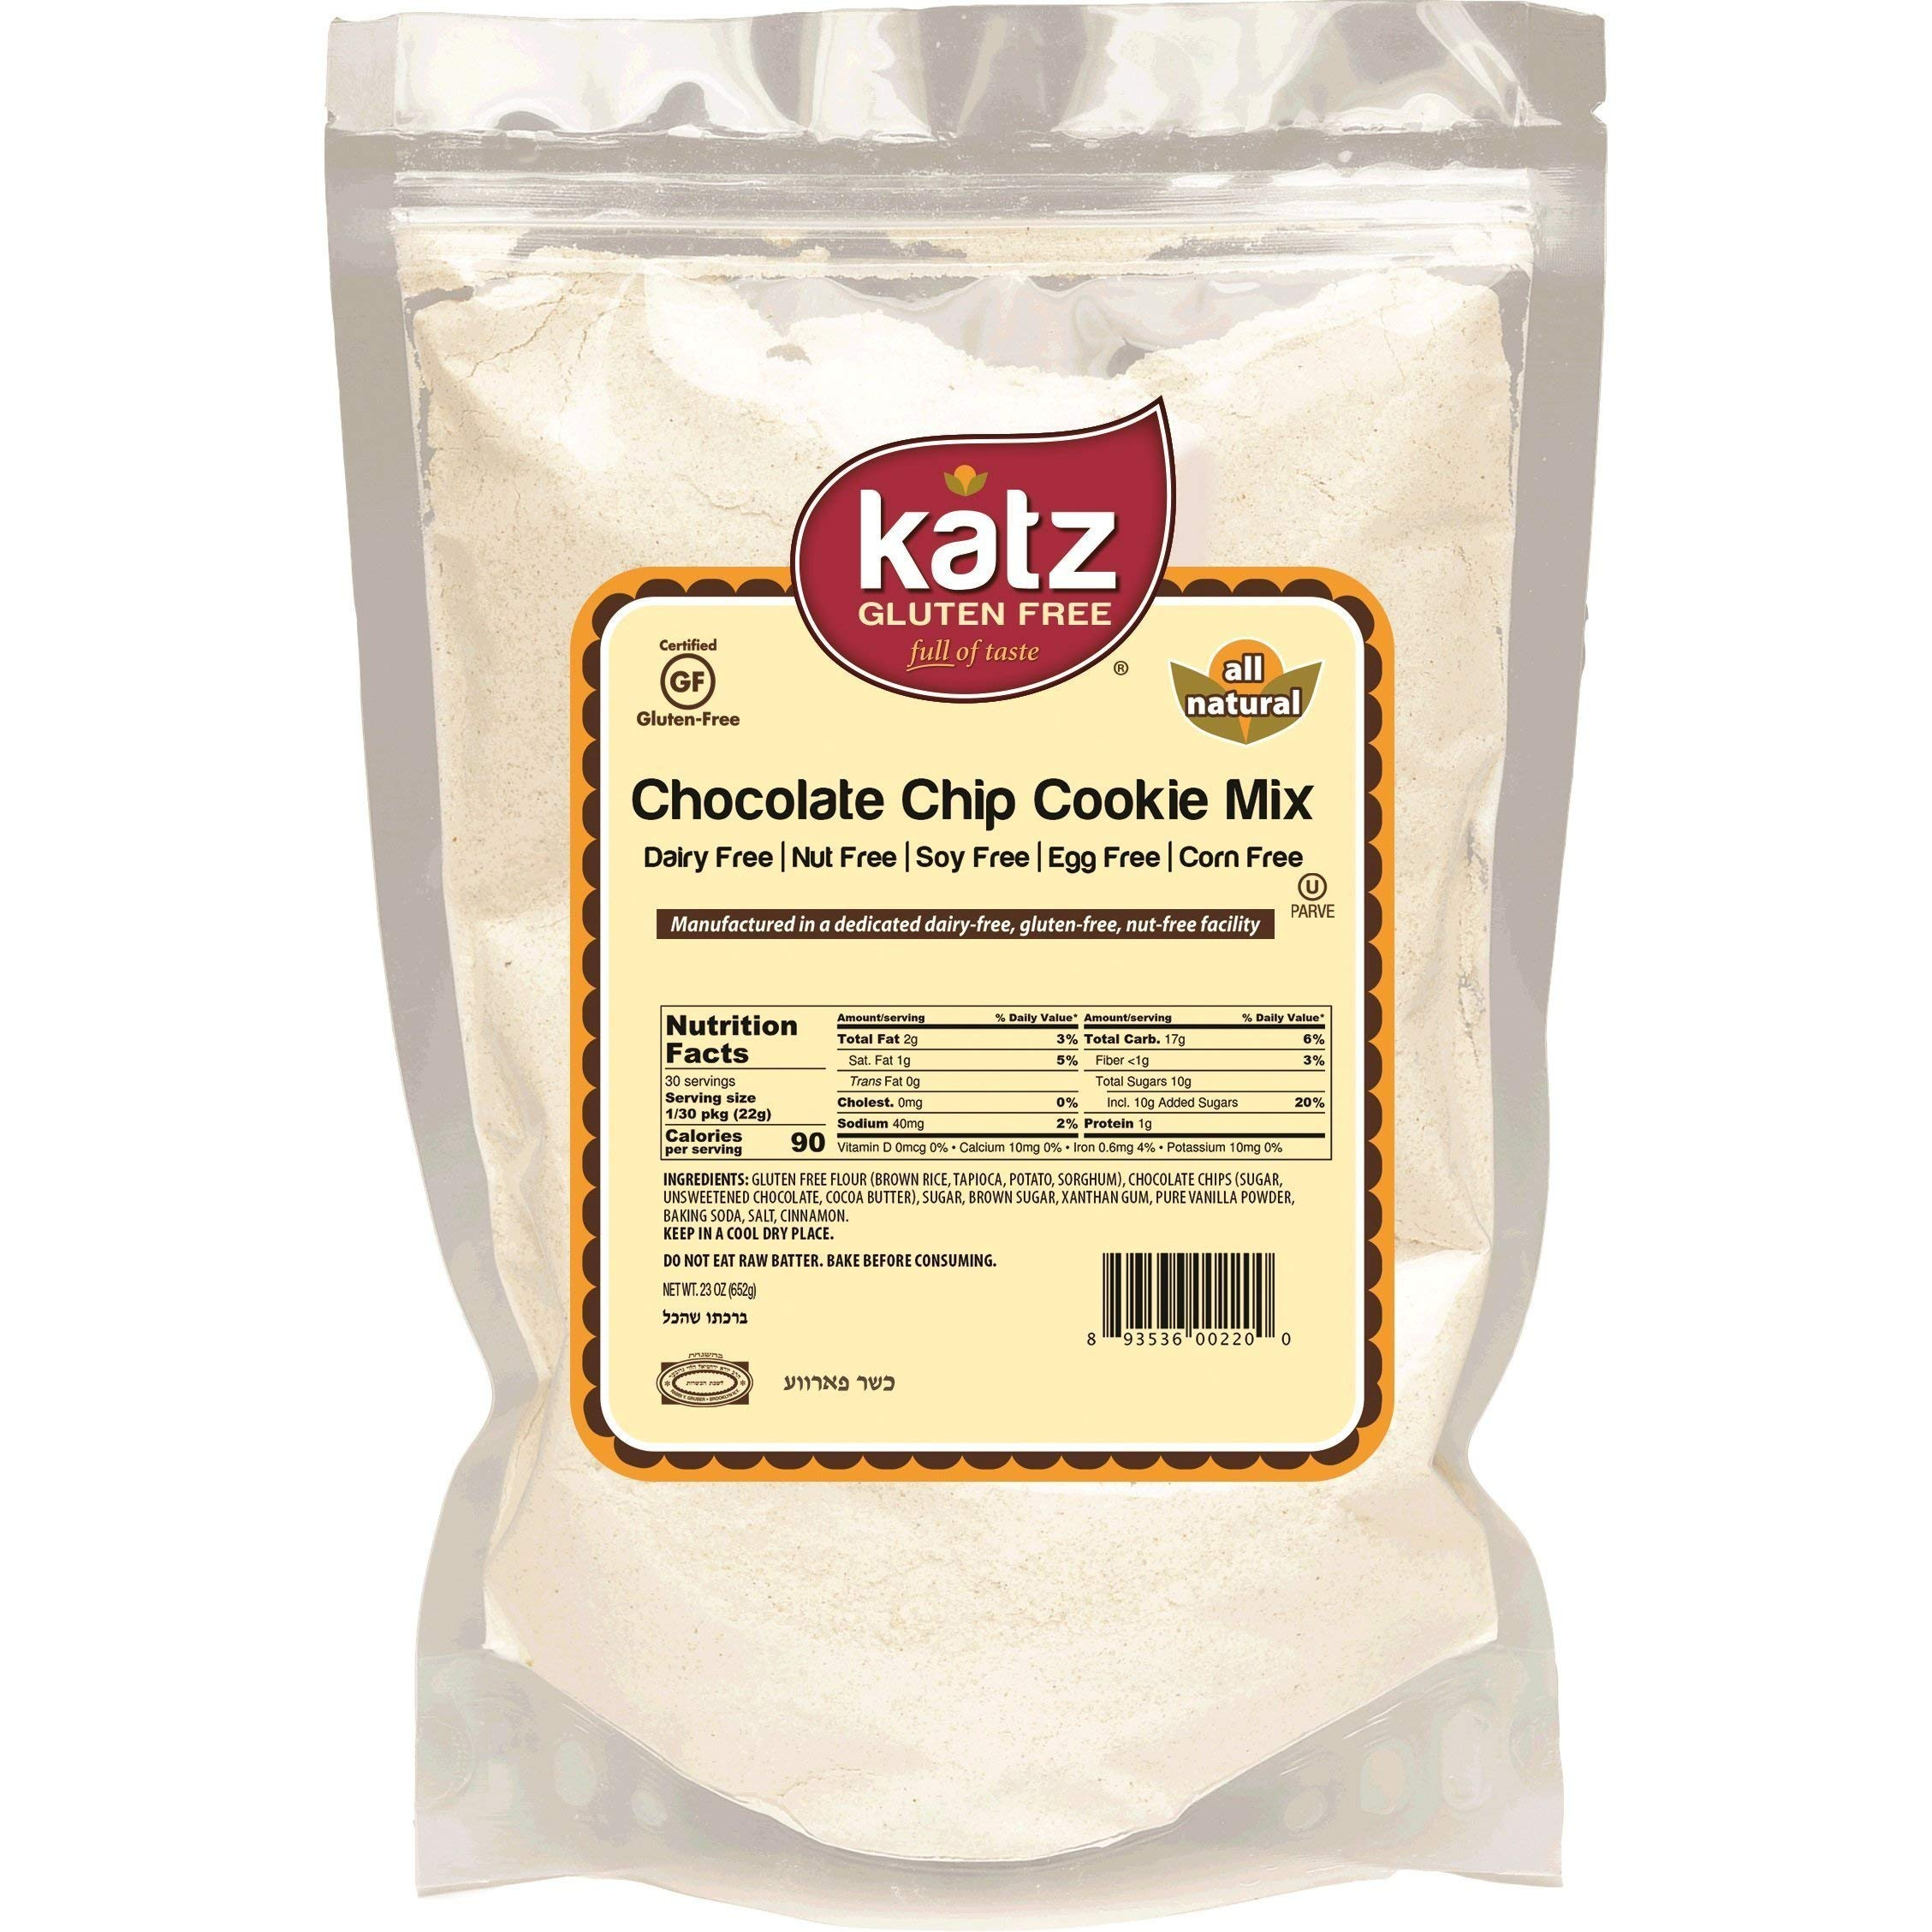 Katz Gluten Free Chocolate Chip Cookie Mix   Dairy, Nut, Soy and Gluten Free   Kosher (1 Pack, 23 Ounce)